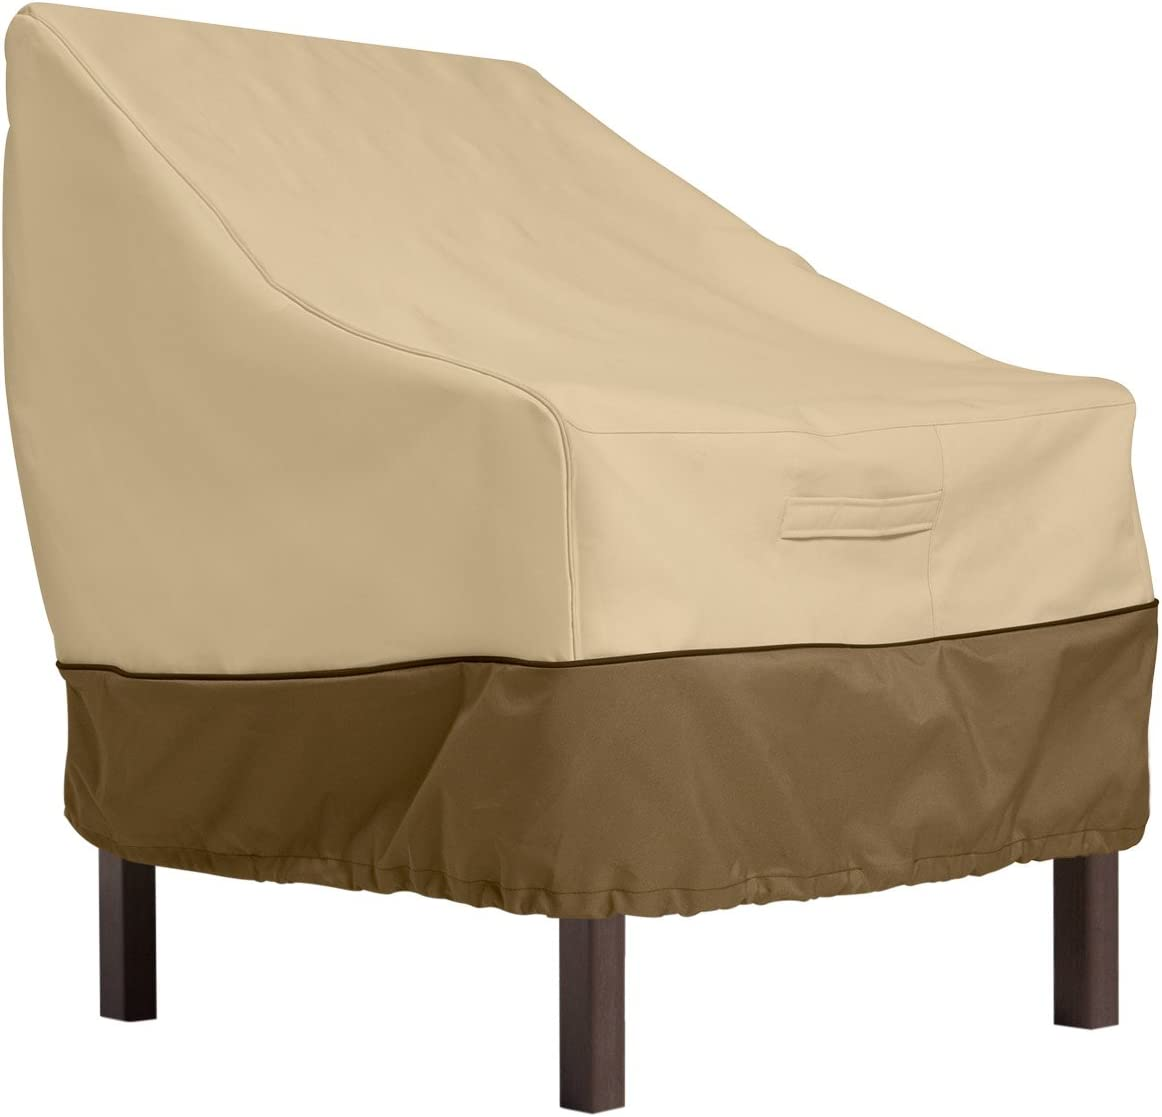 Classic Accessories Veranda Patio Chair Cover